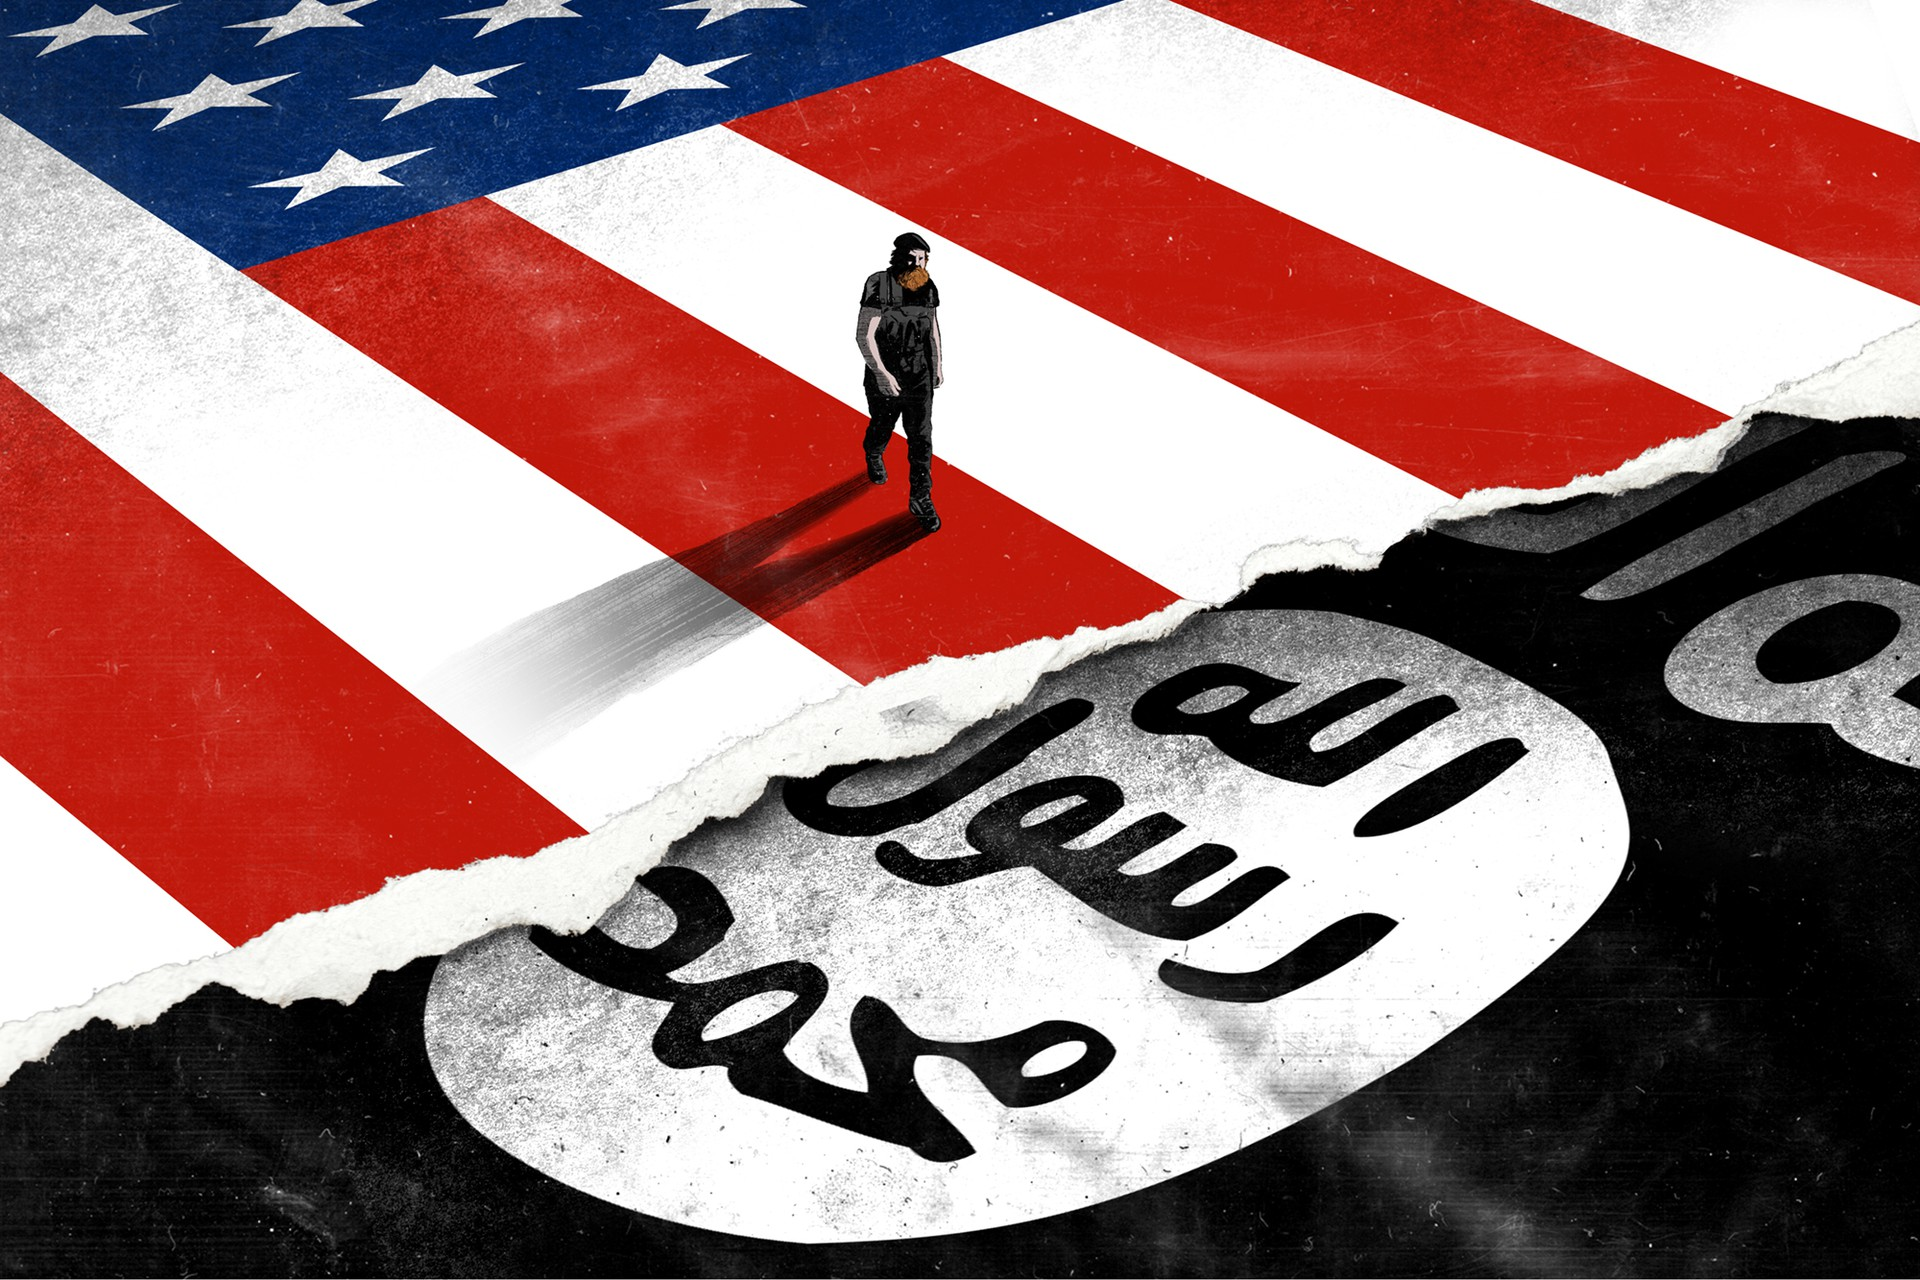 The Bosnian American Who Joined Isis The Atlantic